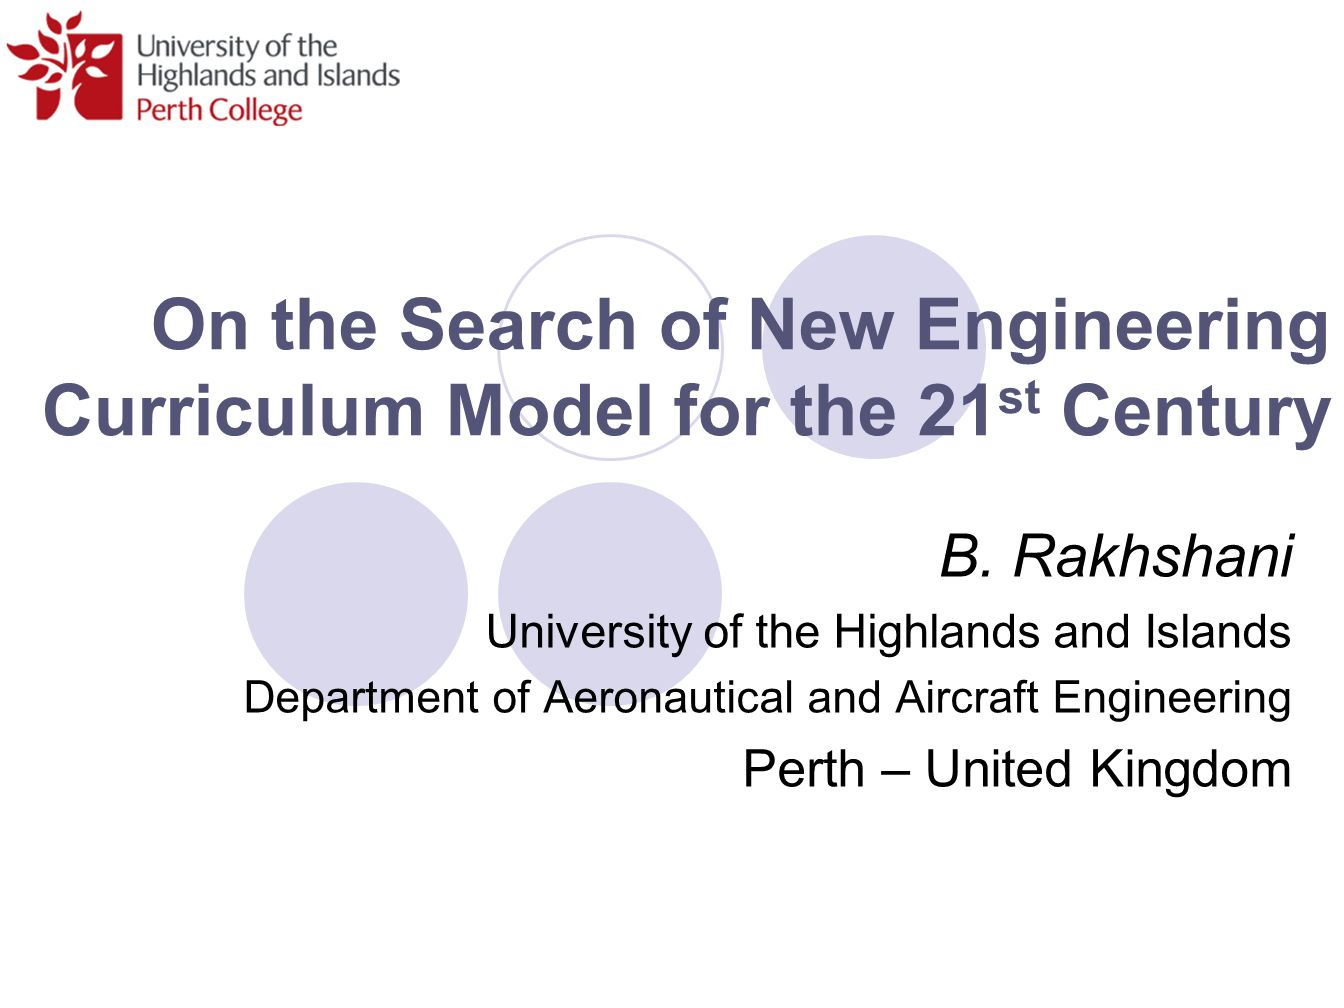 On the Search of New Engineering Curriculum Model for the 21 st Century B. Rakhshani University of the Highlands and Islands Department of Aeronautica